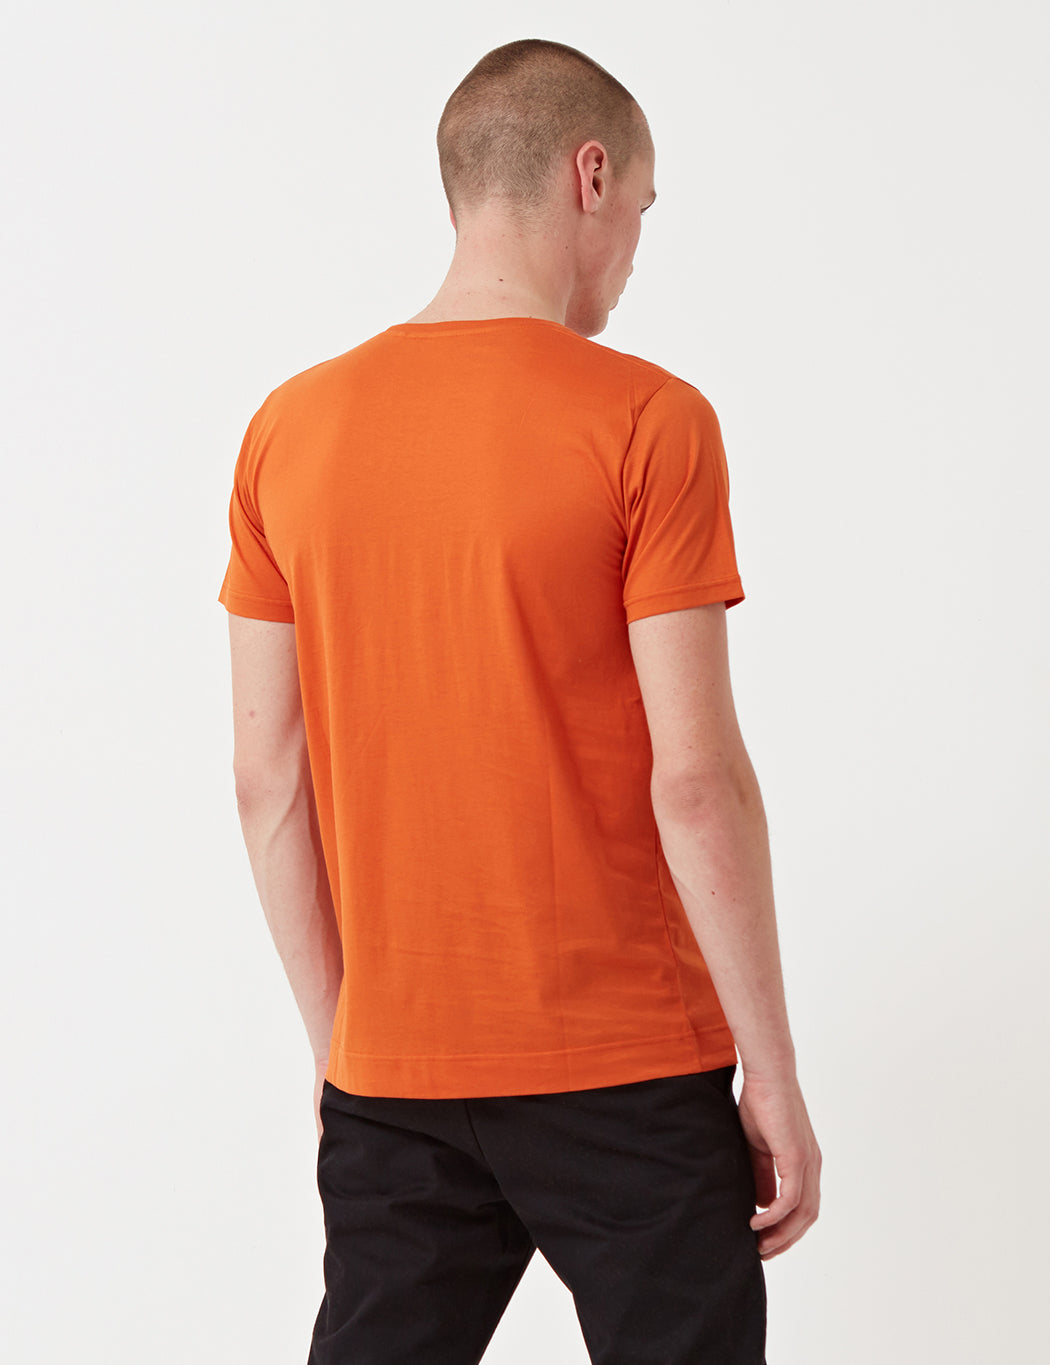 Norse Projects Esben T-Shirt - Ochre Orange